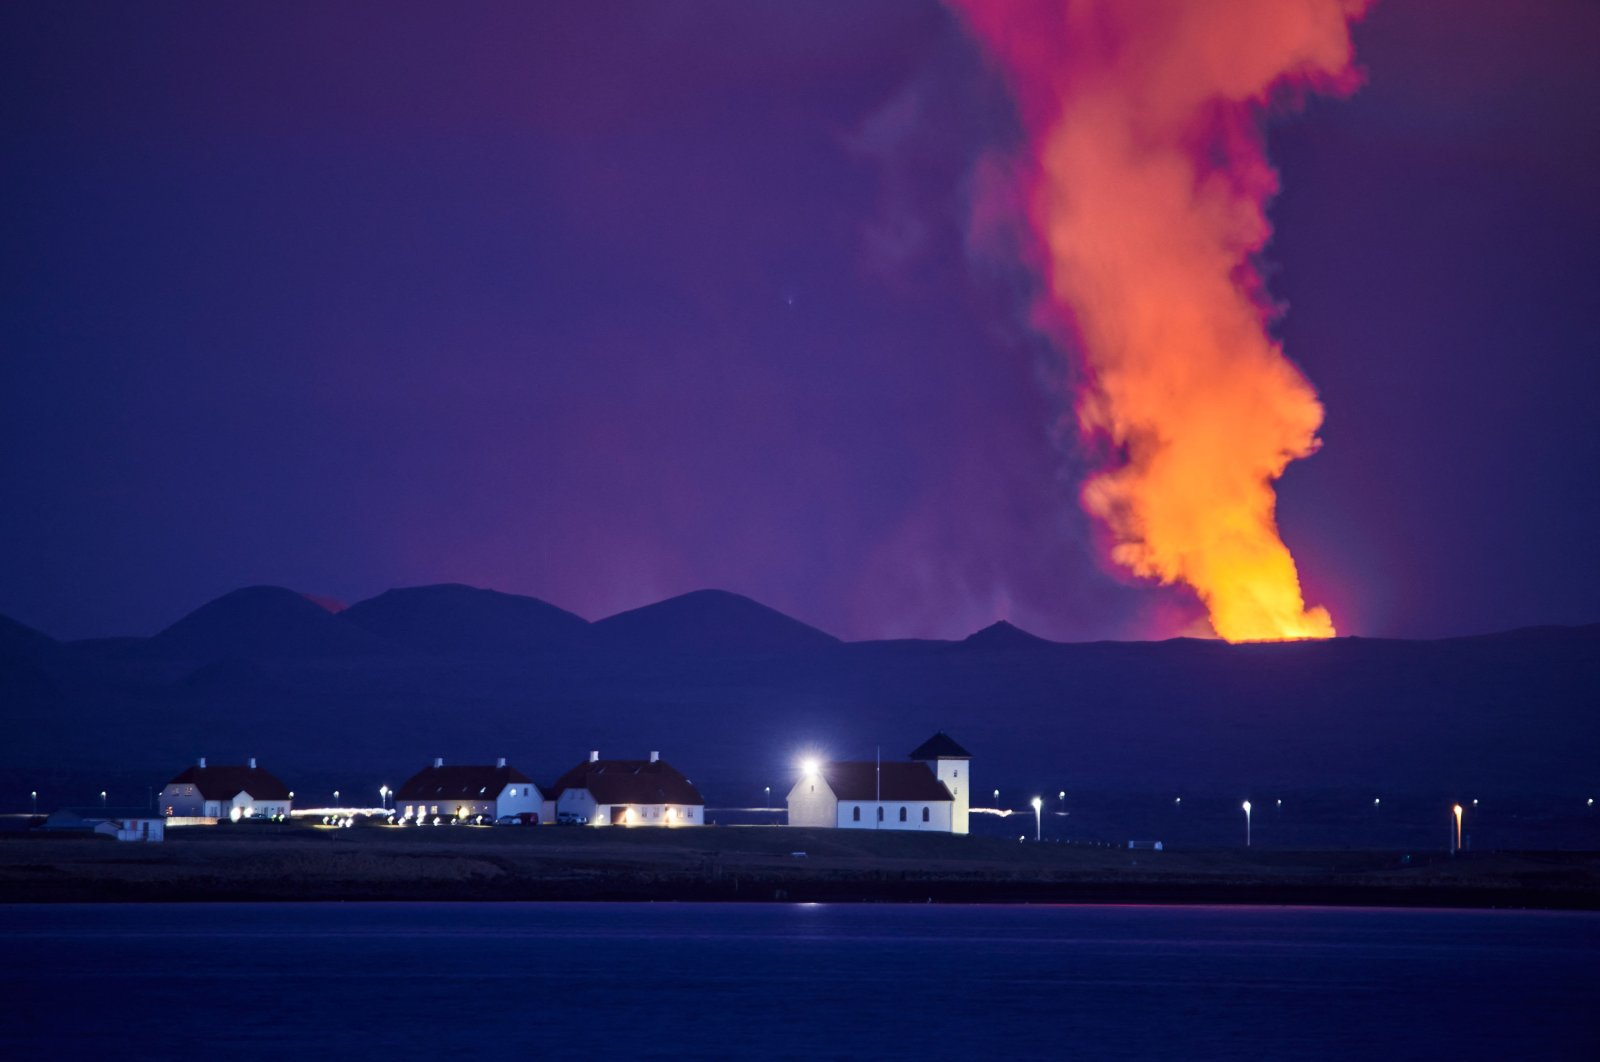 Bessastadir, the official residence of the president of Iceland, is pictured against the backdrop of the smokingFagradalsfjall on the Reykjanes Peninsula, Reykjavik, Iceland, May 5, 2021. (AFP)